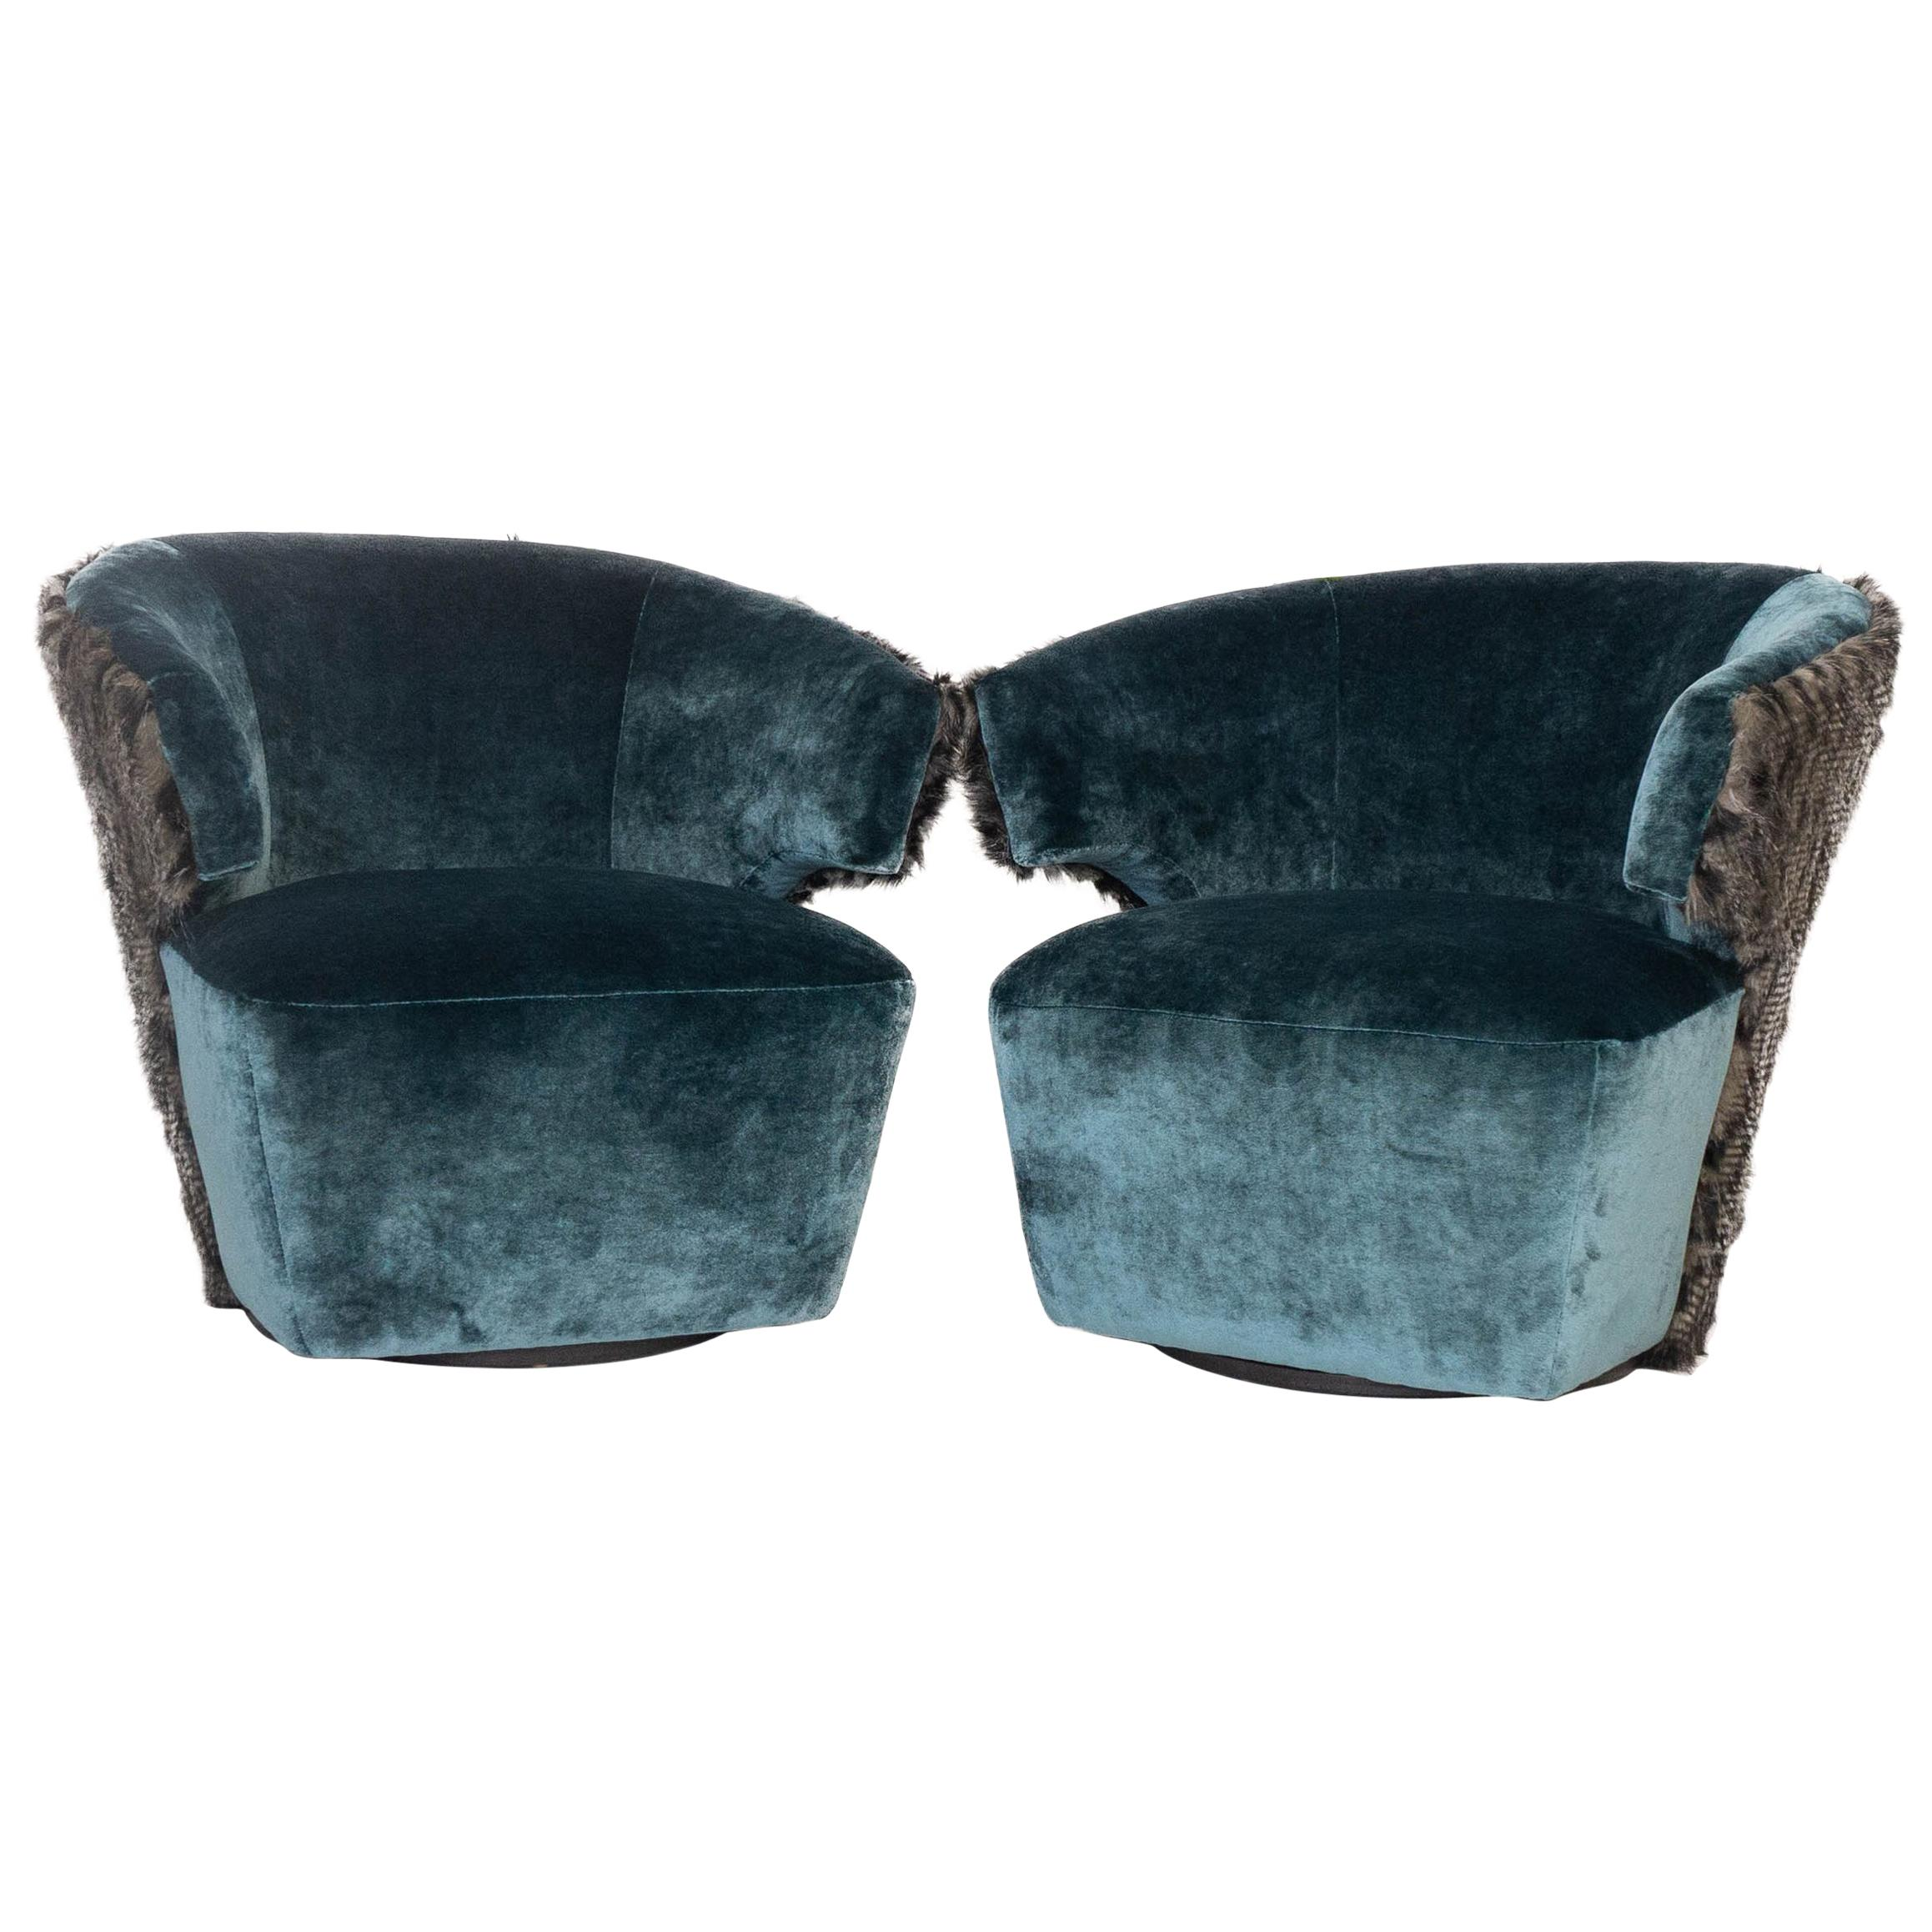 Stupendous Modern Velvet Swivel Chairs With Faux Fur Pabps2019 Chair Design Images Pabps2019Com